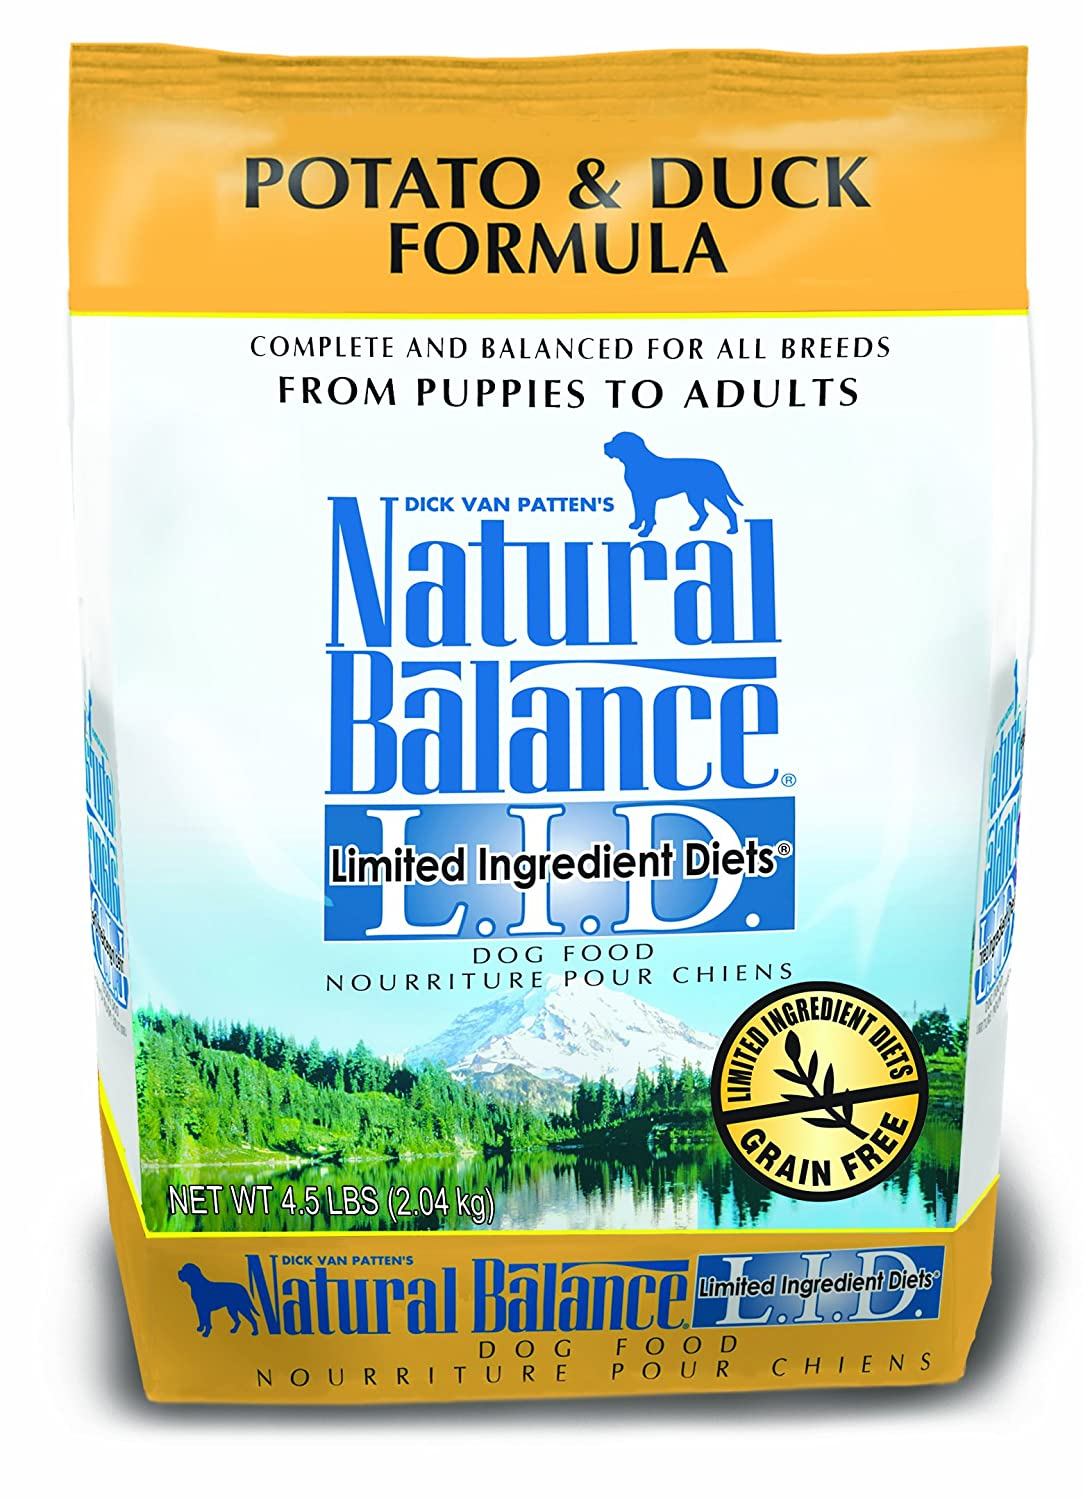 Natural Balance L.I.D. Limited Ingredient Diets Dry Dog Food, Potato Duck Formula